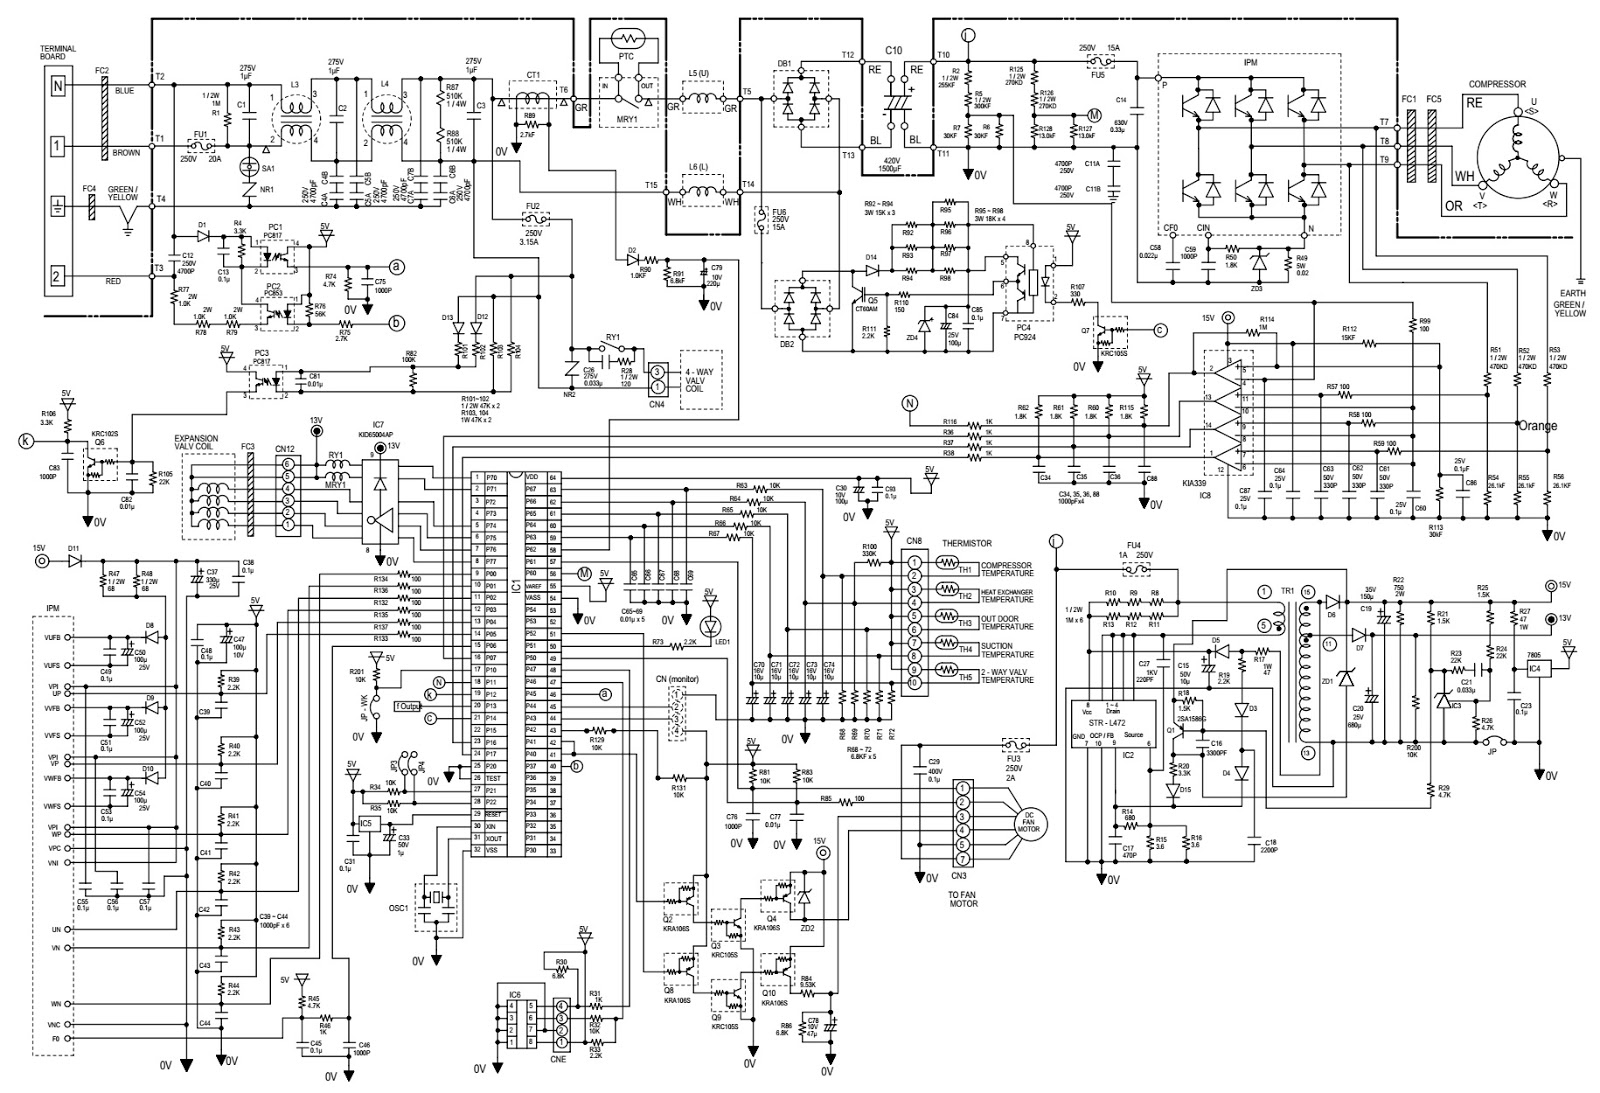 Ac Unit Wiring Diagram Schematic Schematics Diagrams Coleman Sharp Split Type Room Air Conditioners Ay Xp07er Goodman